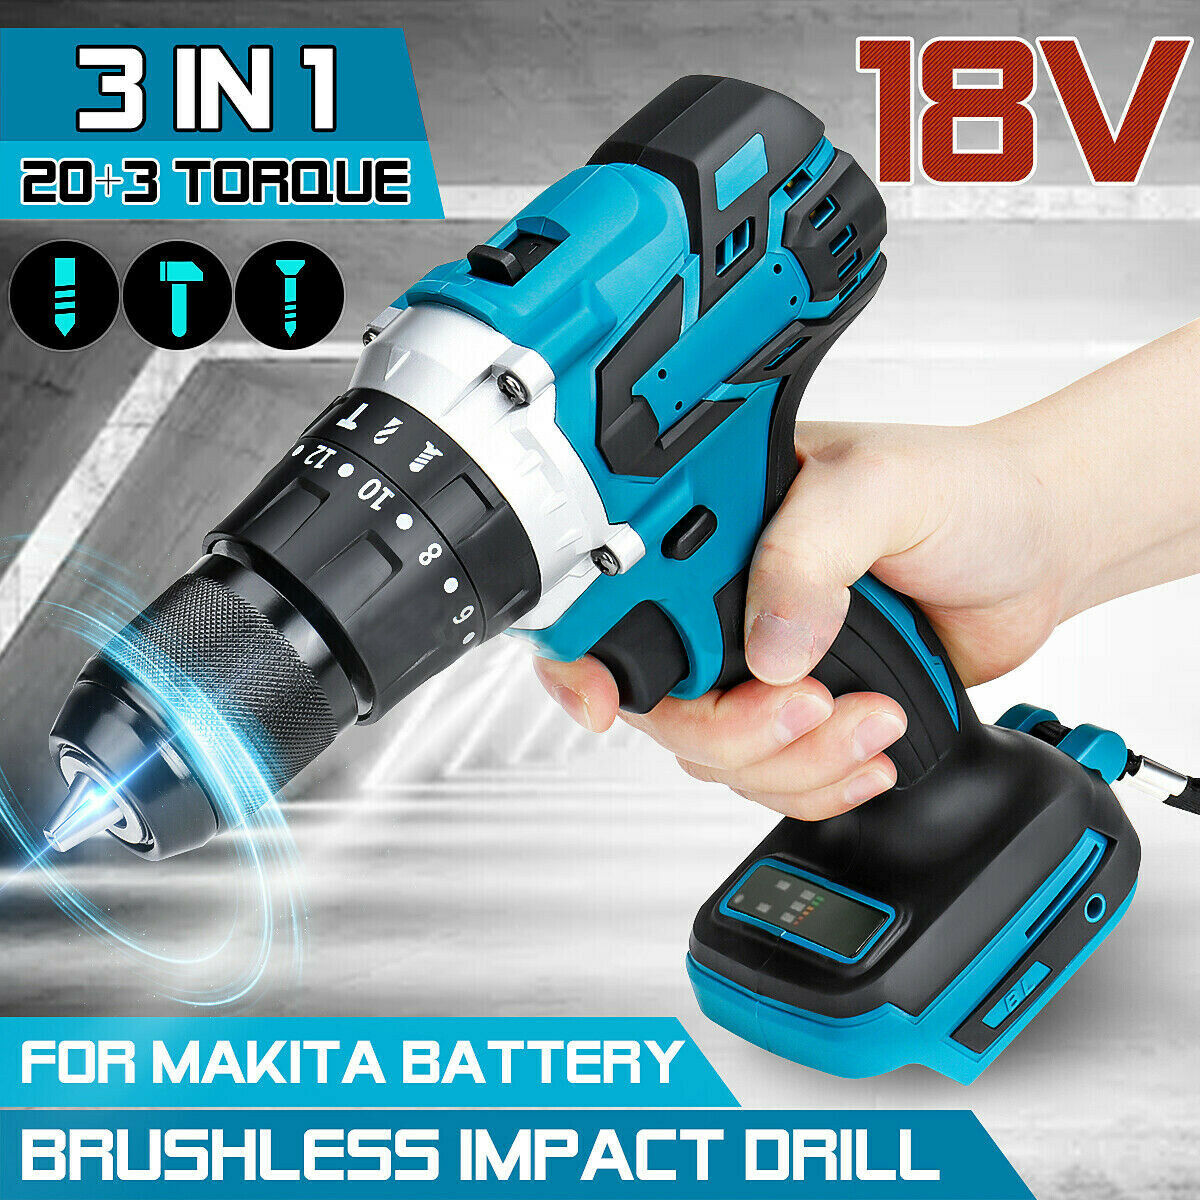 For Makita 18V Battery 3 in 1 Brushless Electric Hammer Drill Electric Screwdriver 13mm 20+3 Torque Cordless Impact Drill|Electric Drills|   - AliExpress